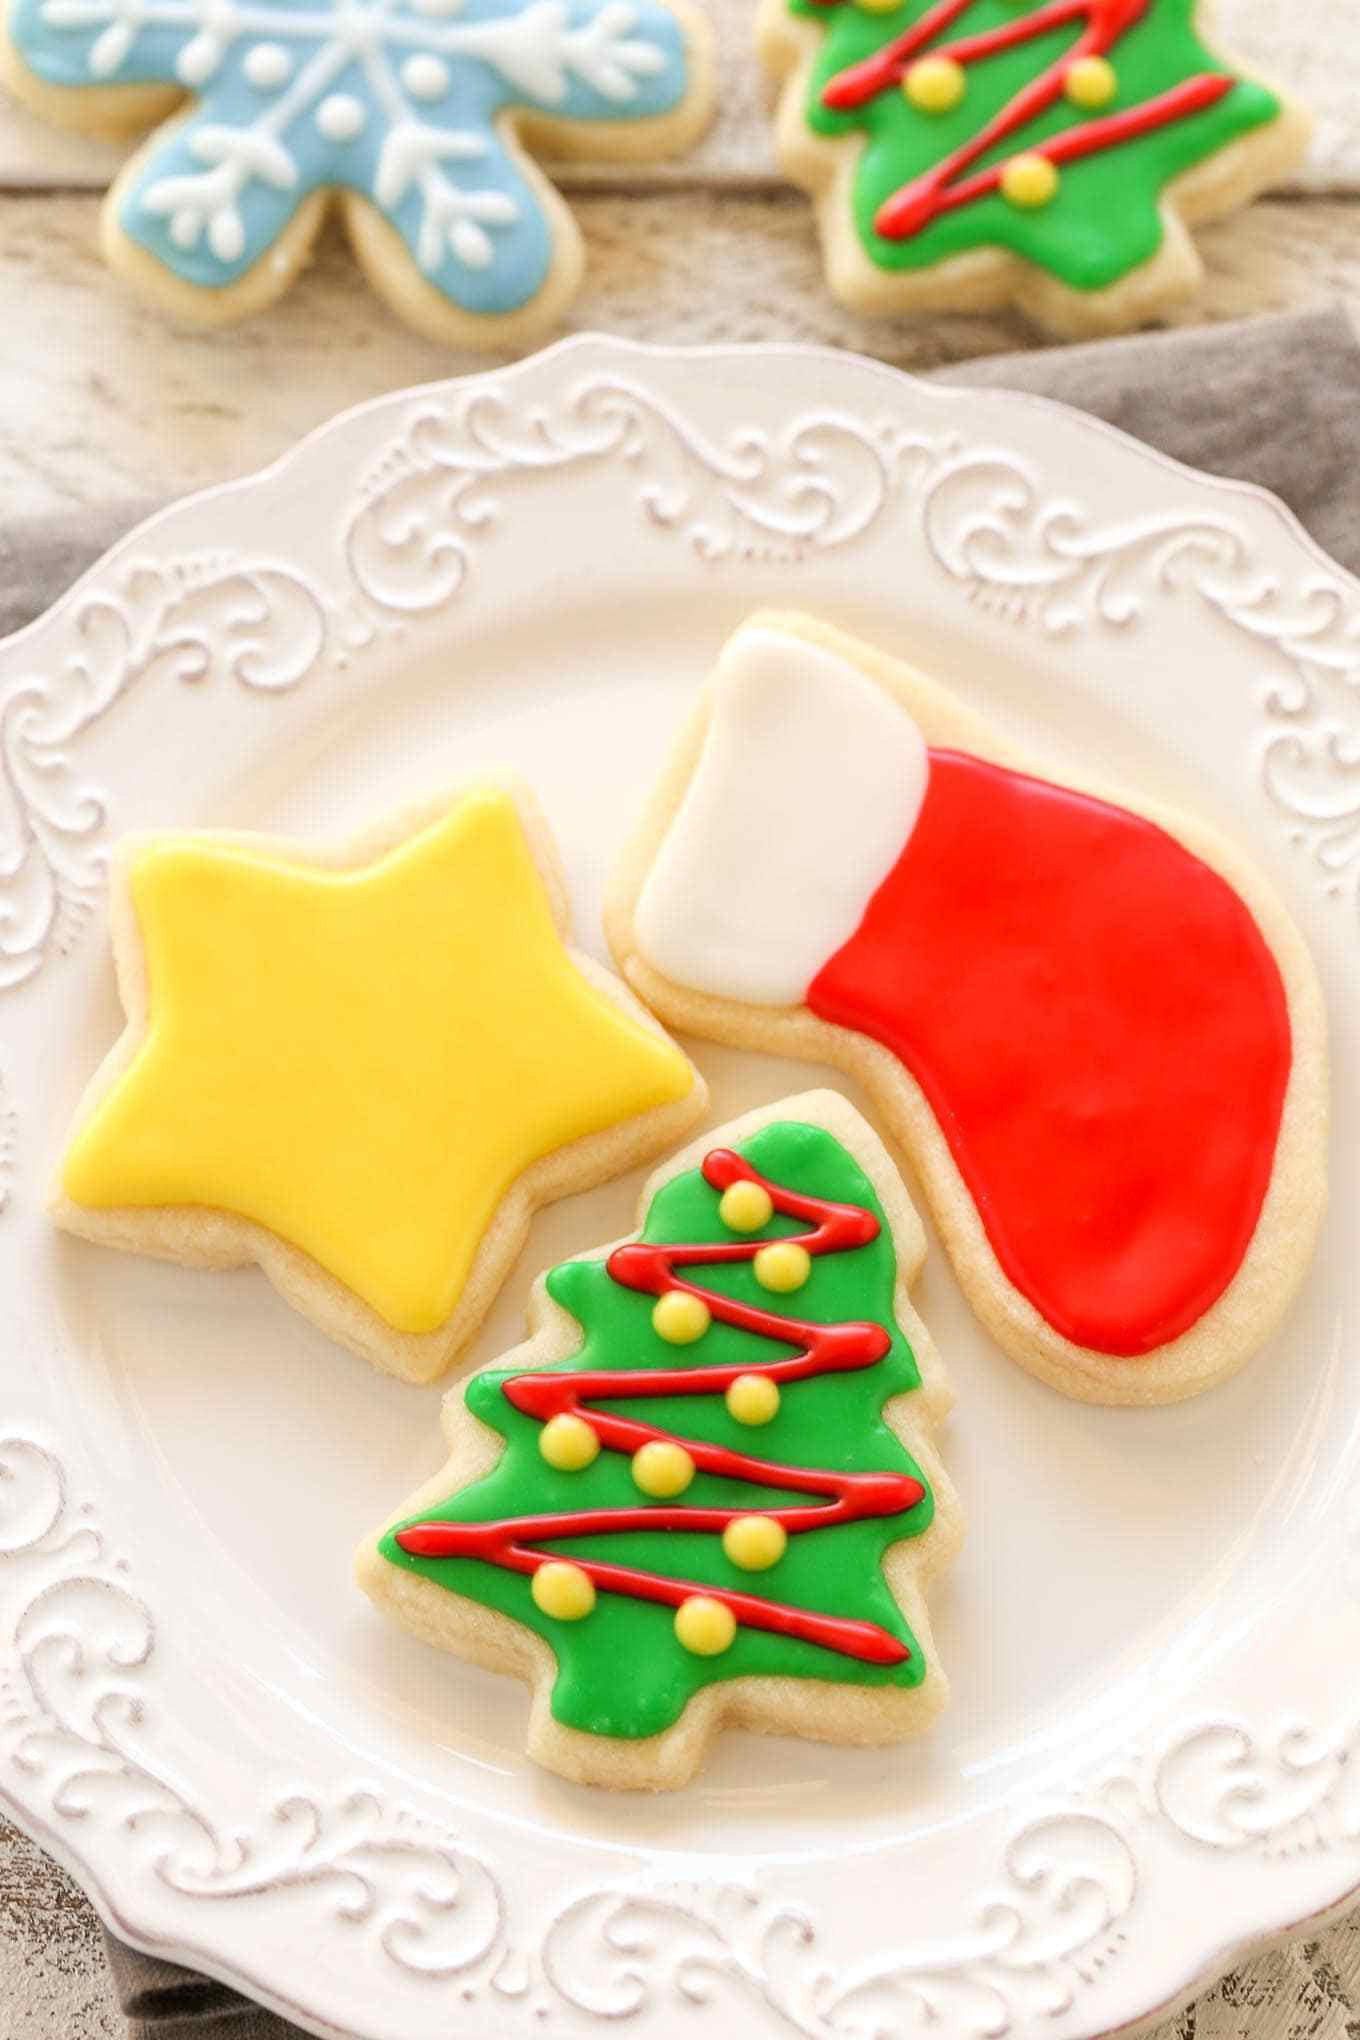 Christmas Cookies Cut Outs  Soft Christmas Cut Out Sugar Cookies Live Well Bake ten